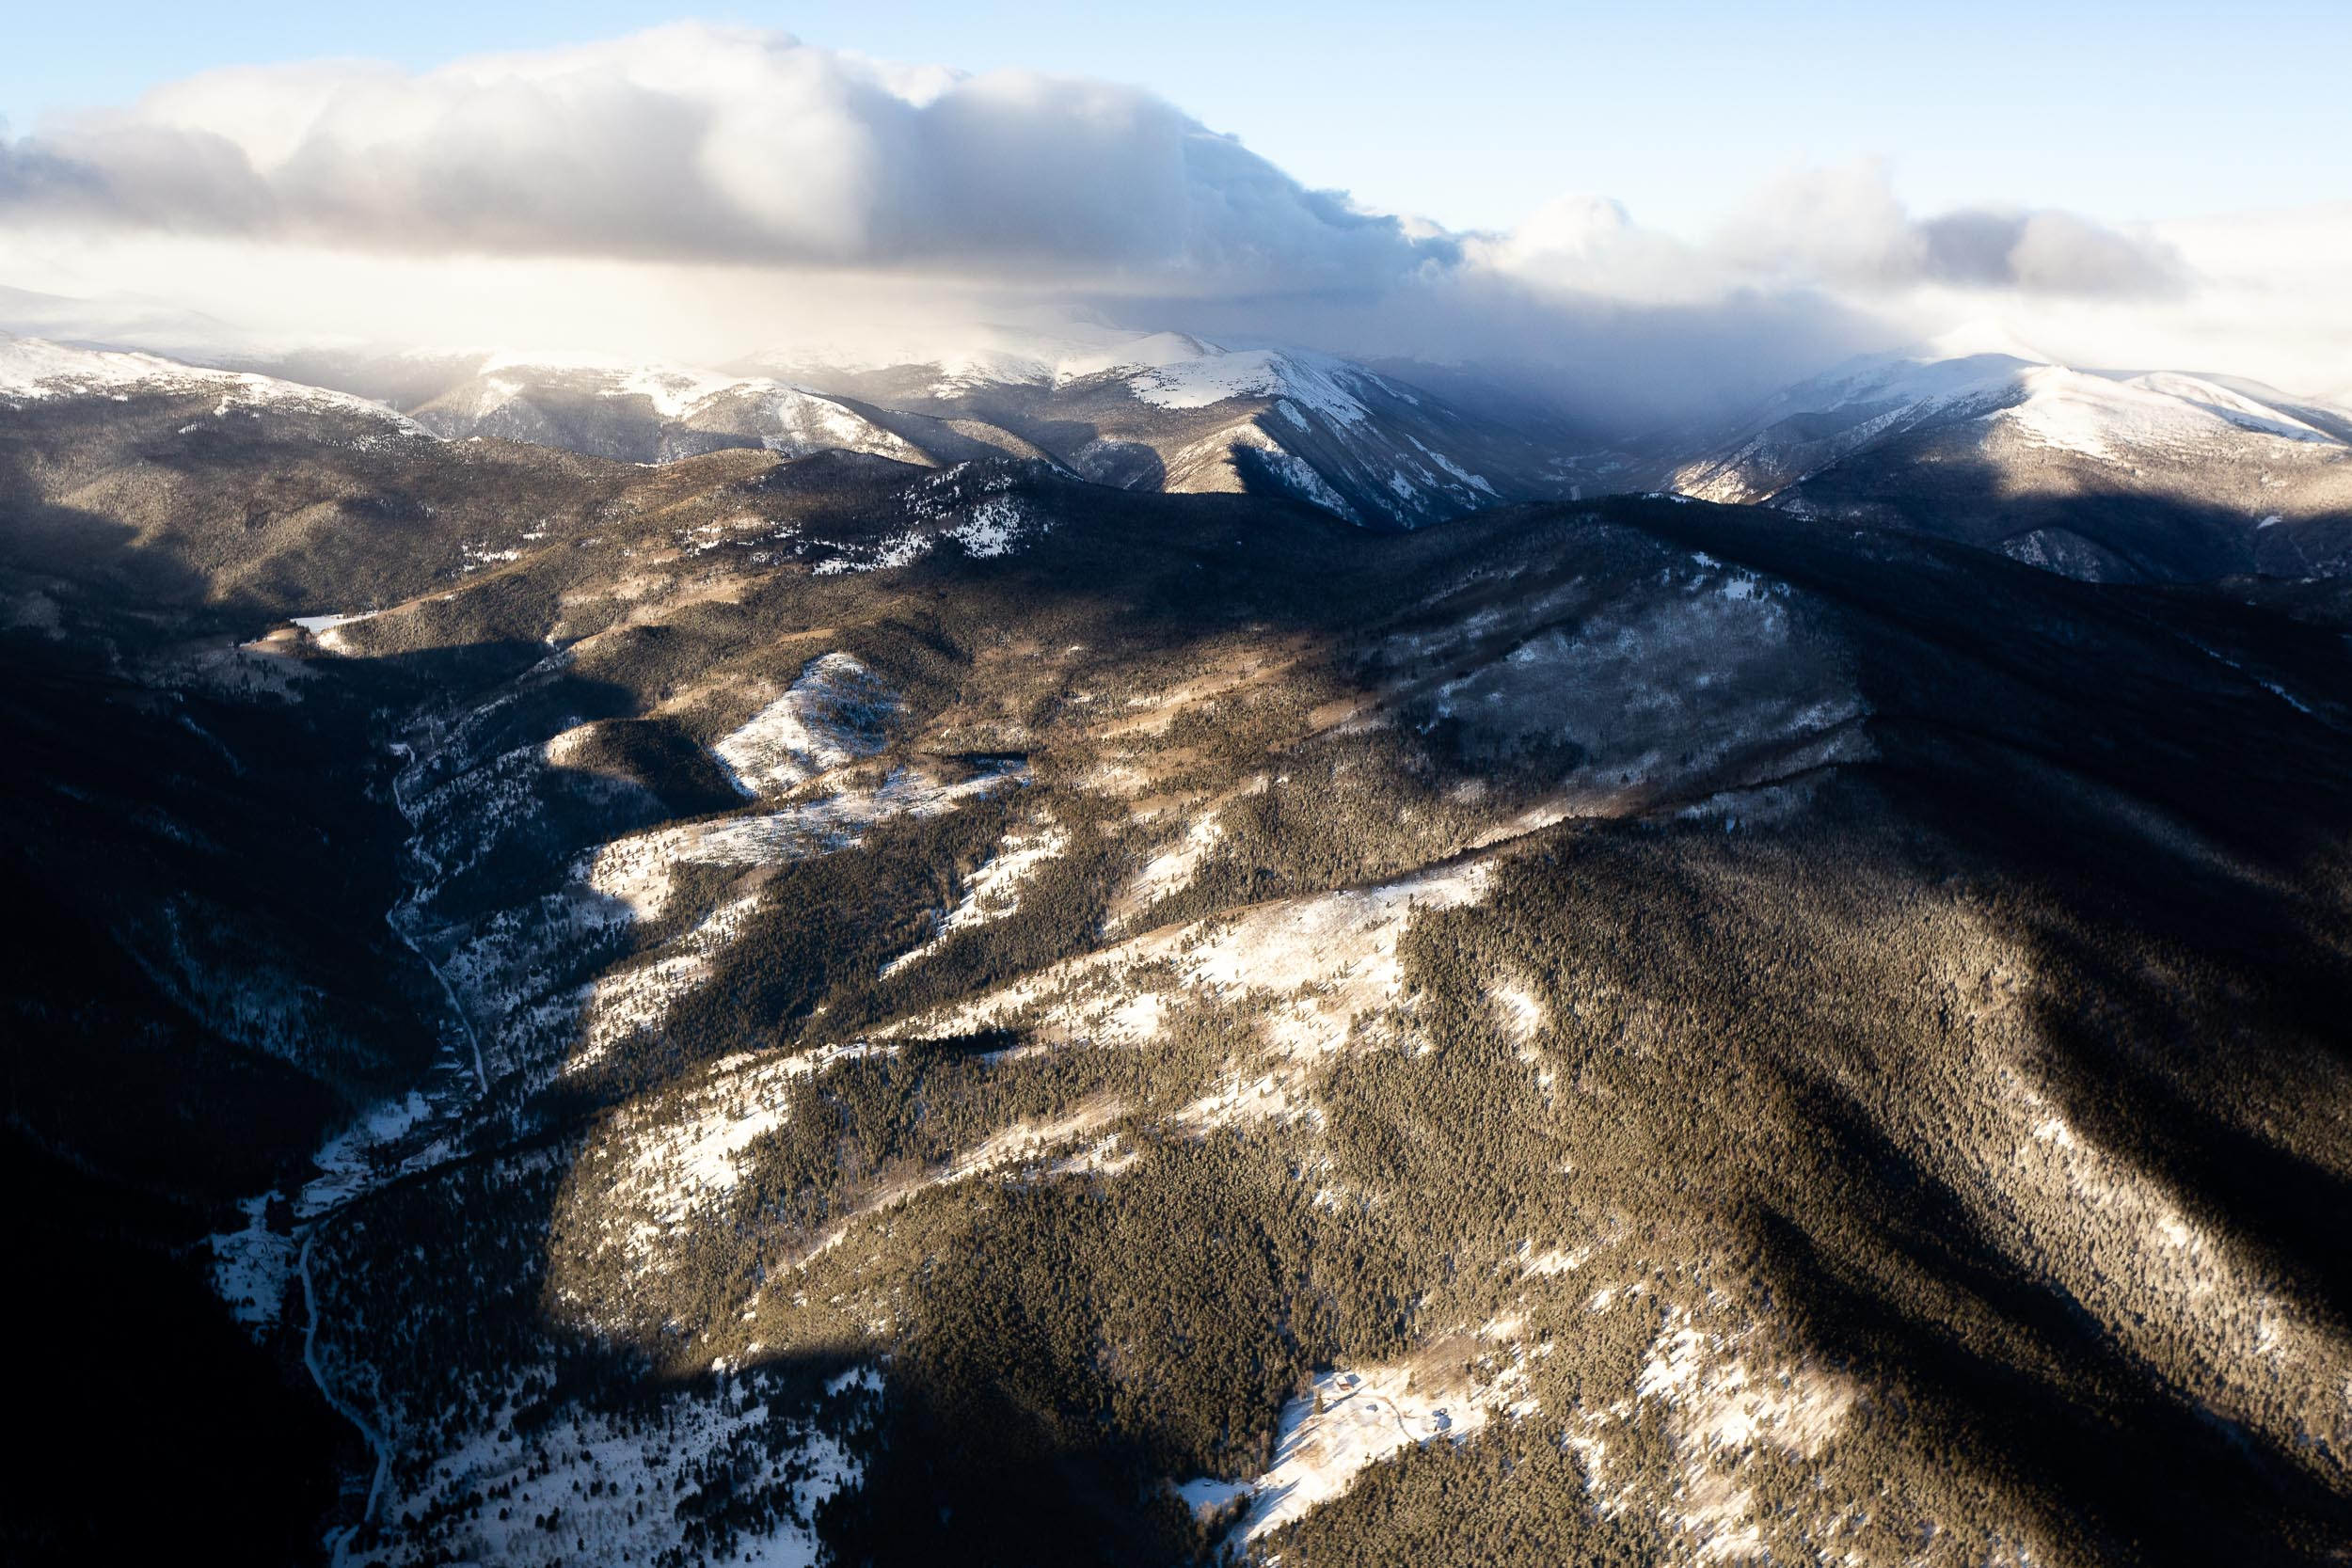 An aerial photography of the Rocky Mountains in Colorado near Mt. Evans with clouds in the sky casting shadows in the valleys below.